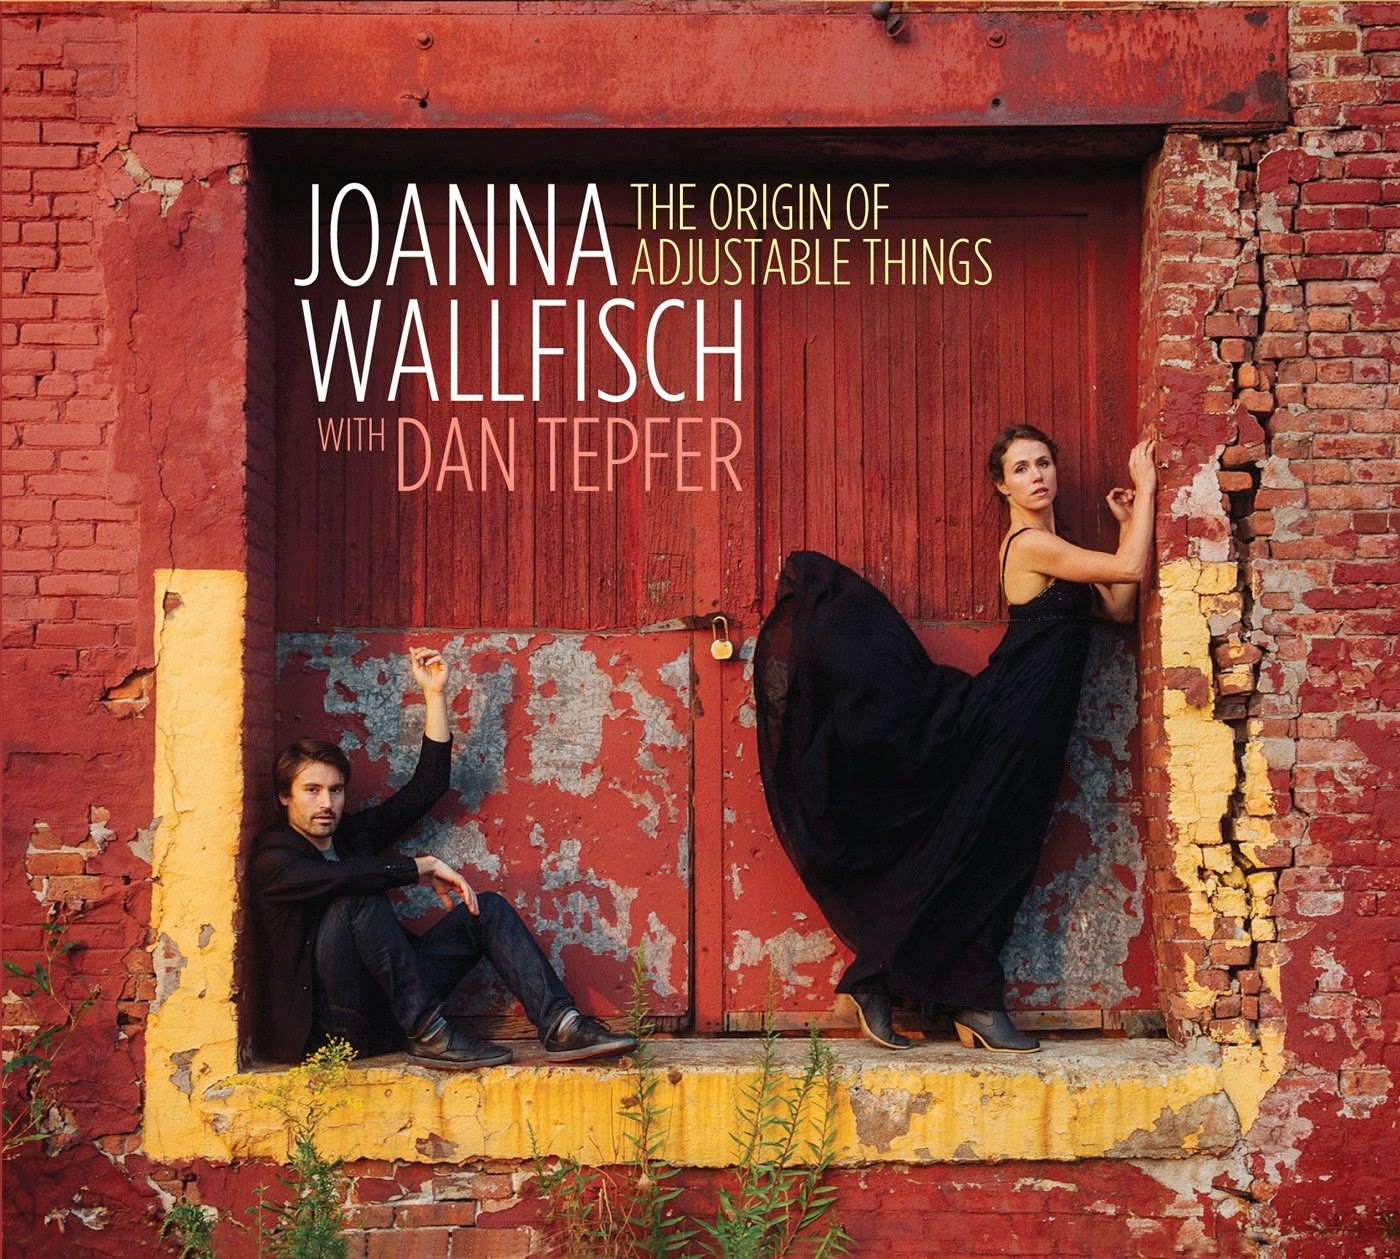 Joanna Wallfisch - The Origin of Adjustable Things